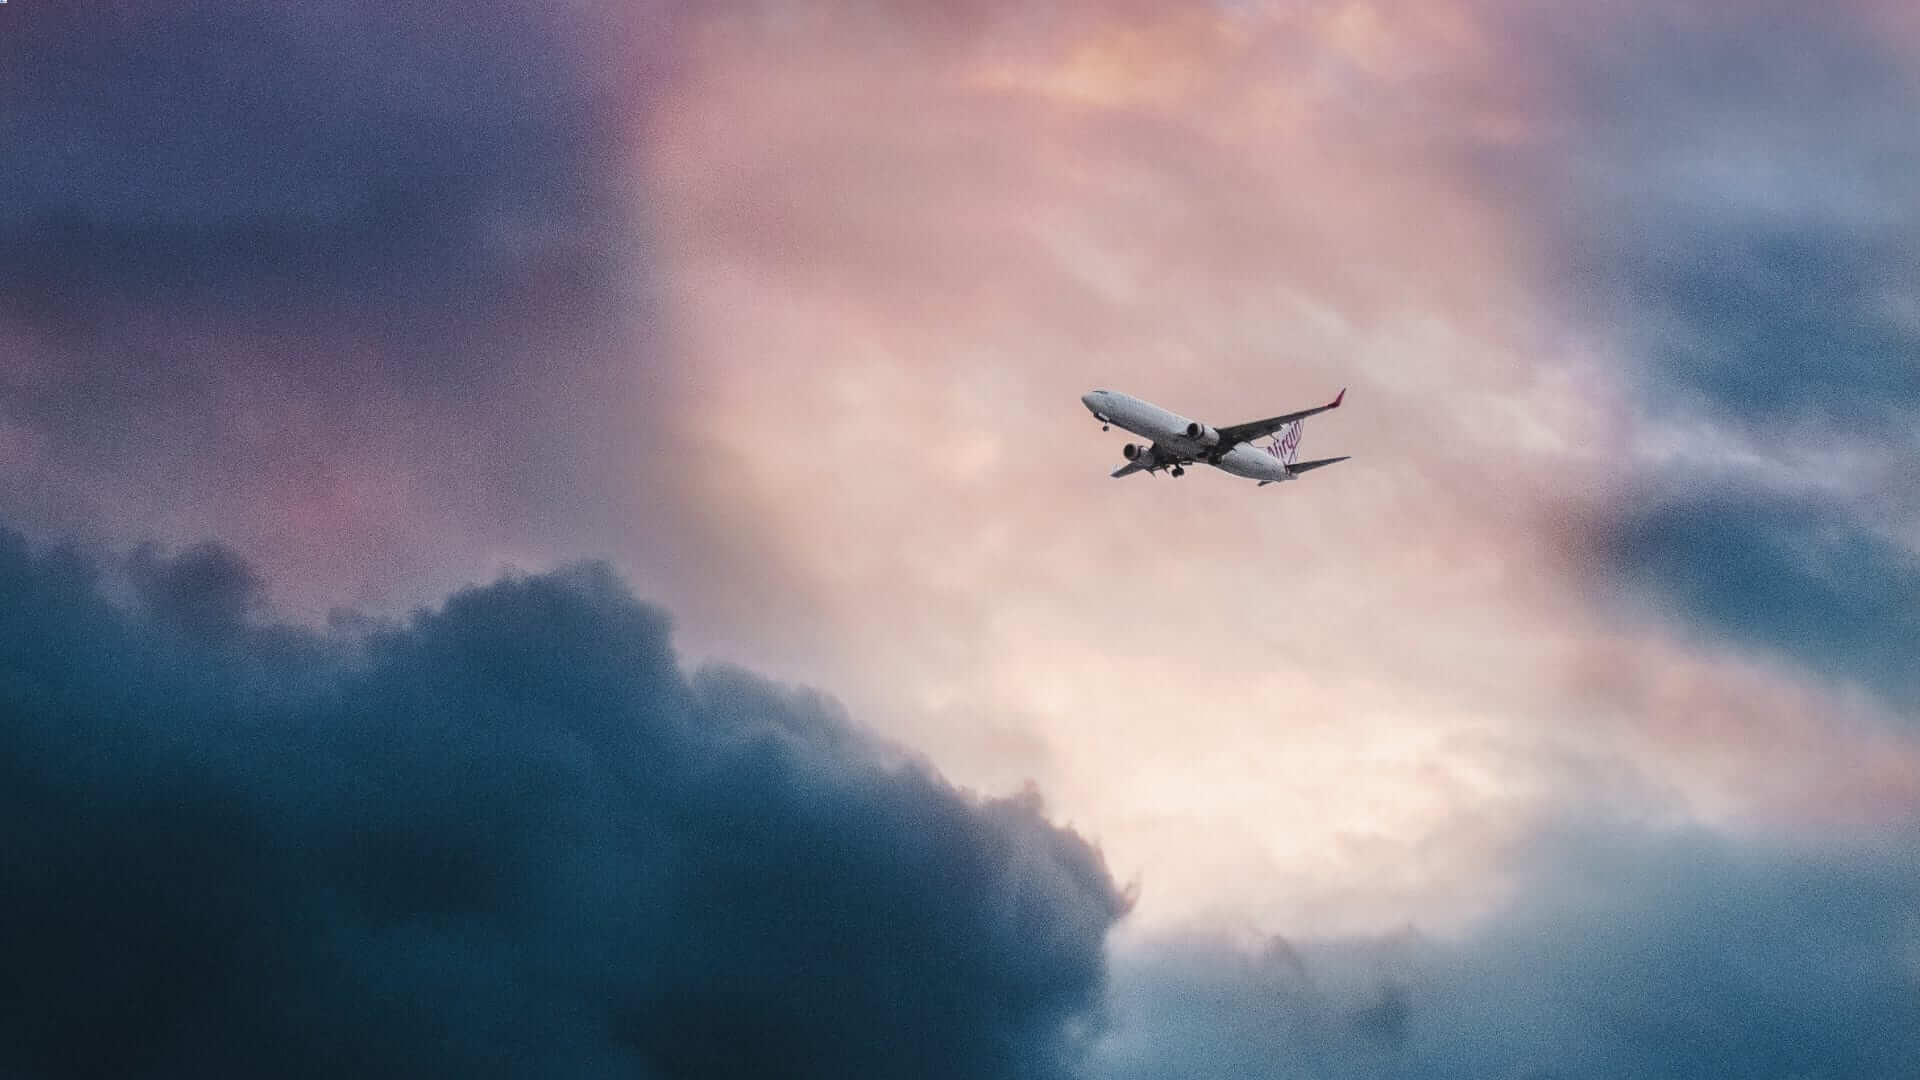 An airplane is flying under pink clouds.